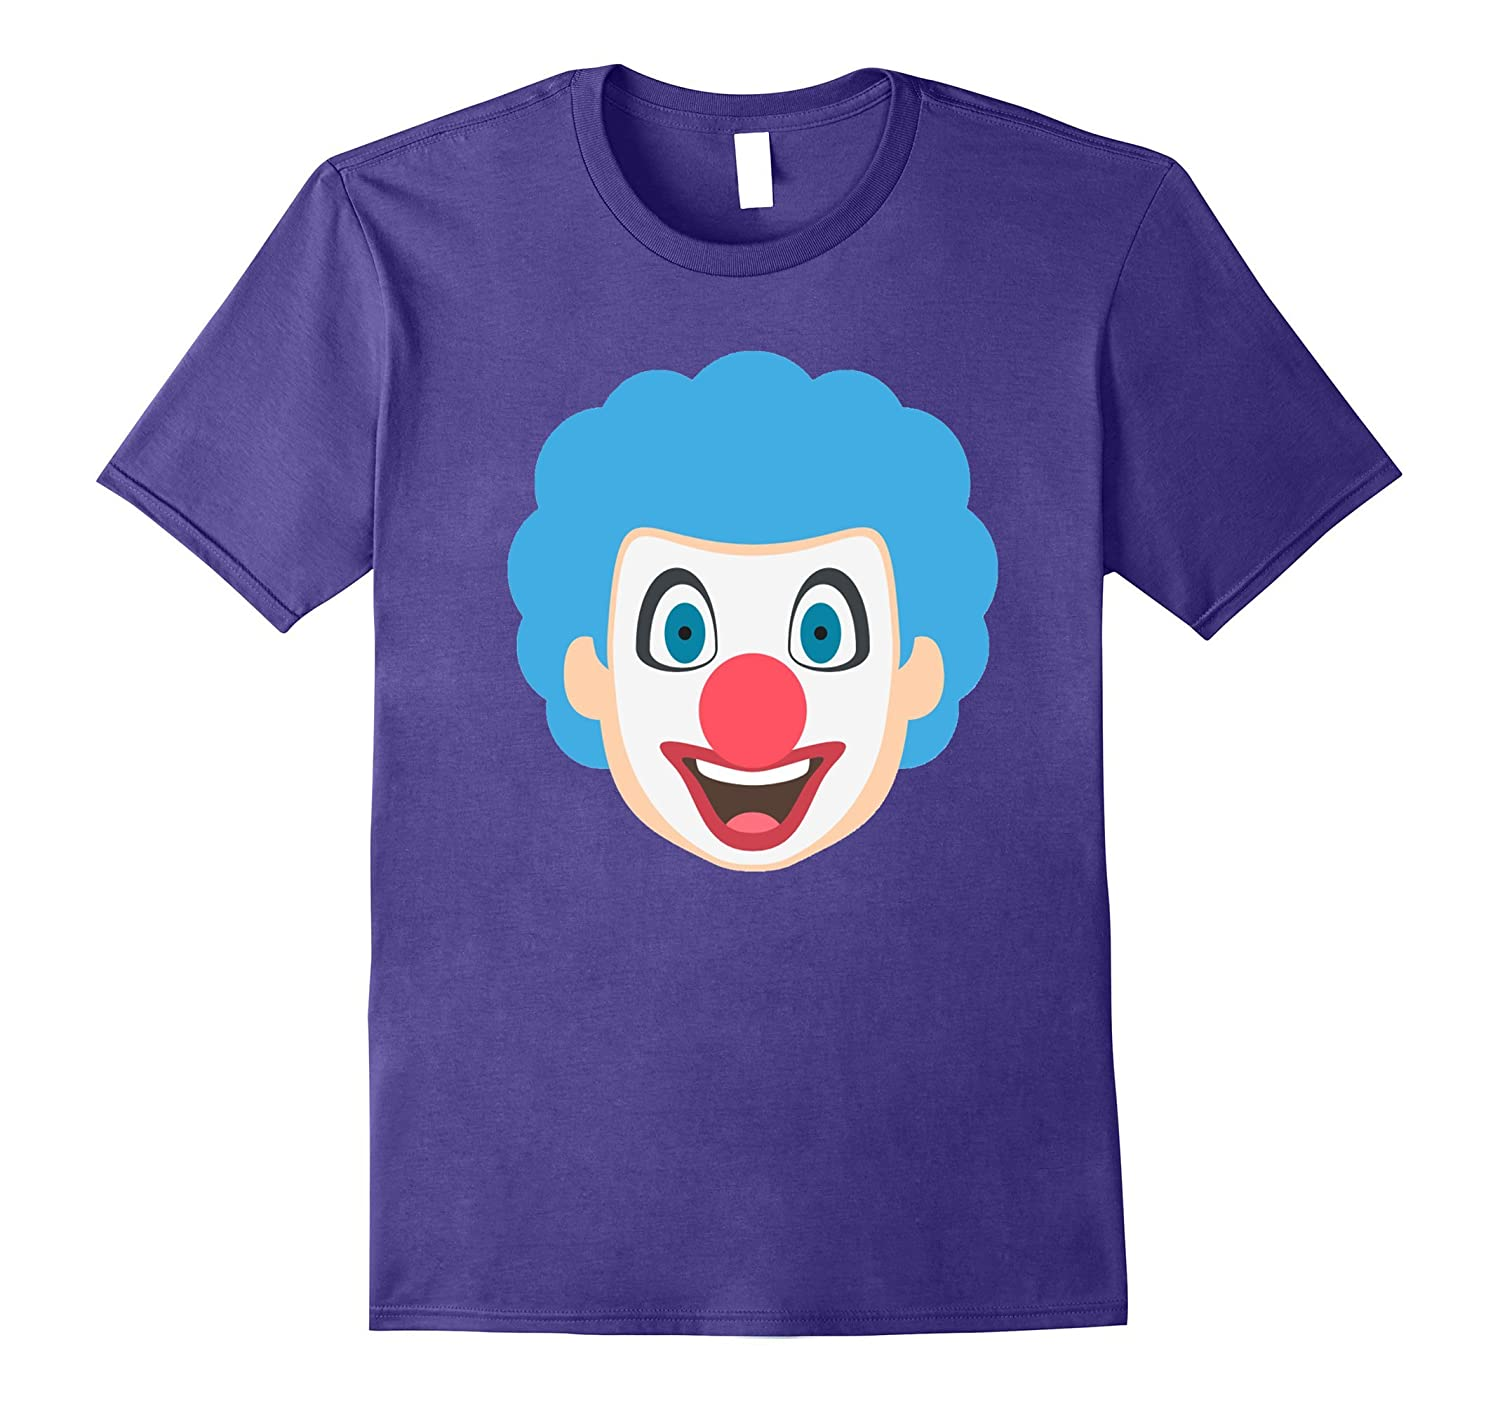 Clown Emoji T-Shirt Red Nose Painted Face Happy Smile-Art